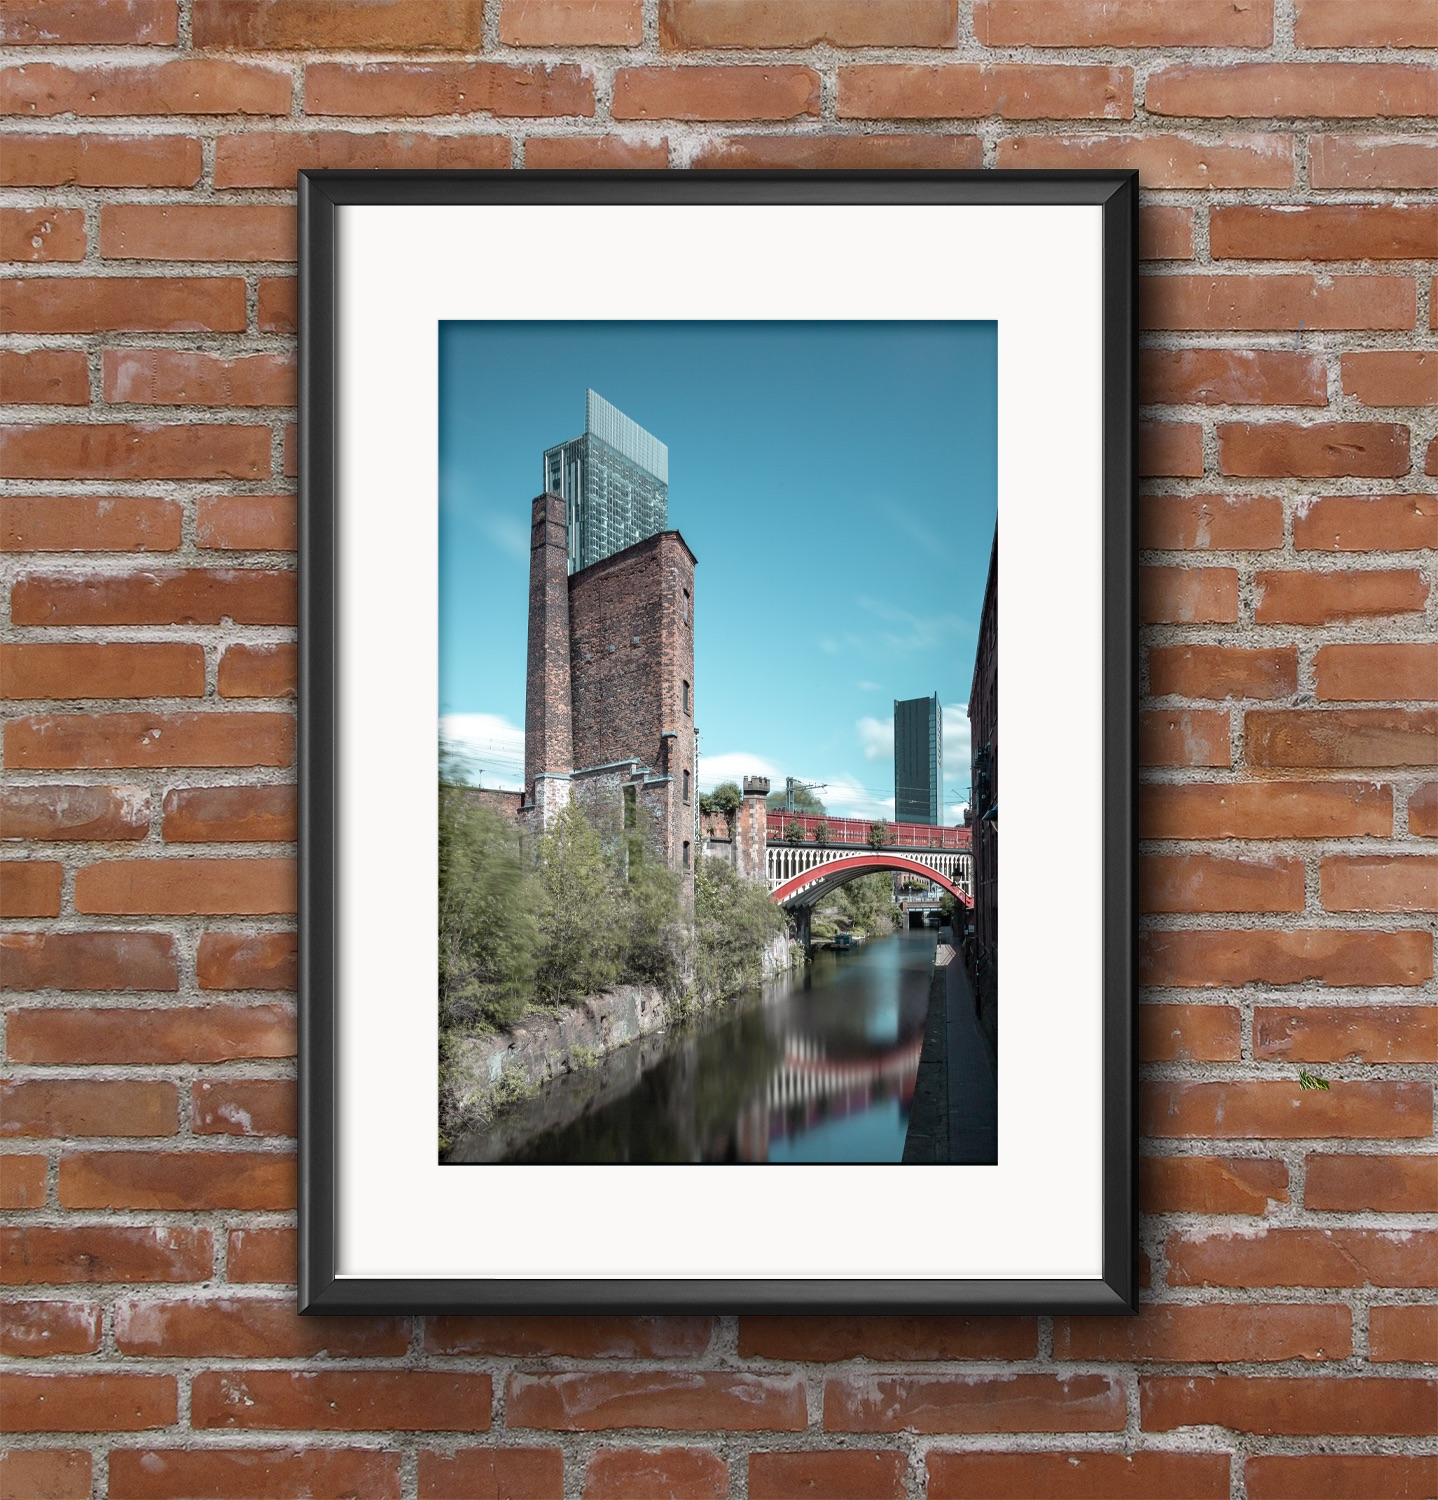 Manchester's three towers overlooking Castlefield canal.